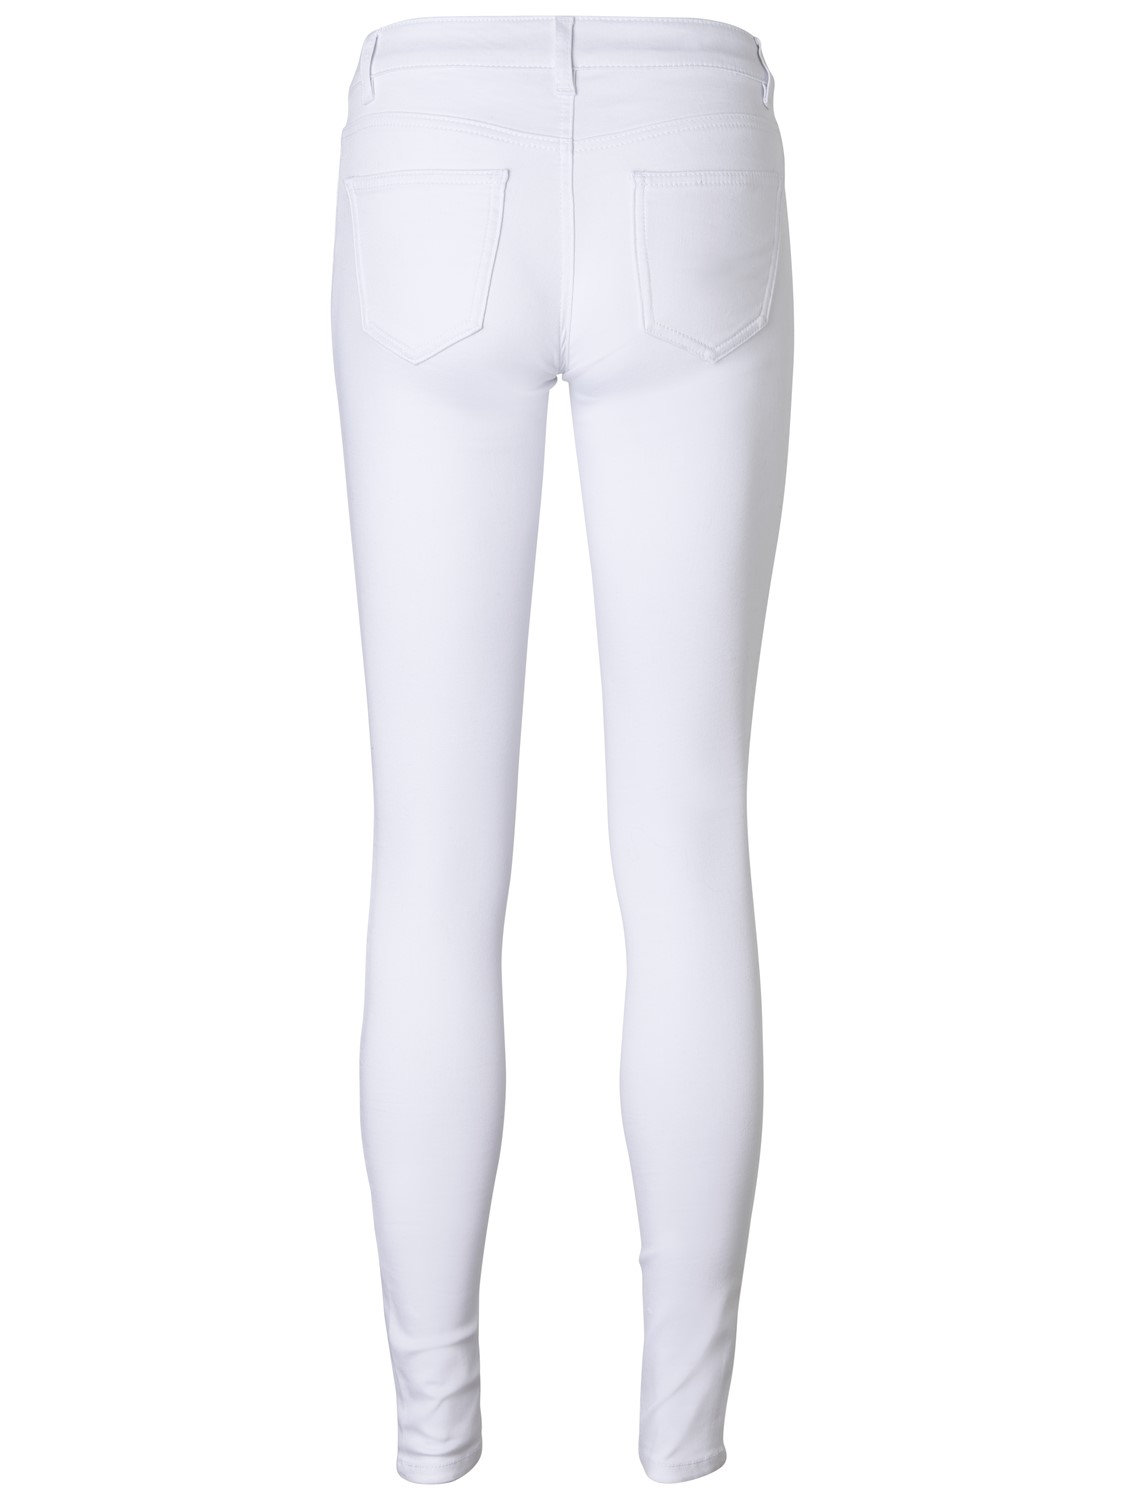 noisy-may-damen-jeans-nmeve-lw-s-slim-jeans-white-gu501-super-slim-fit-wei-white